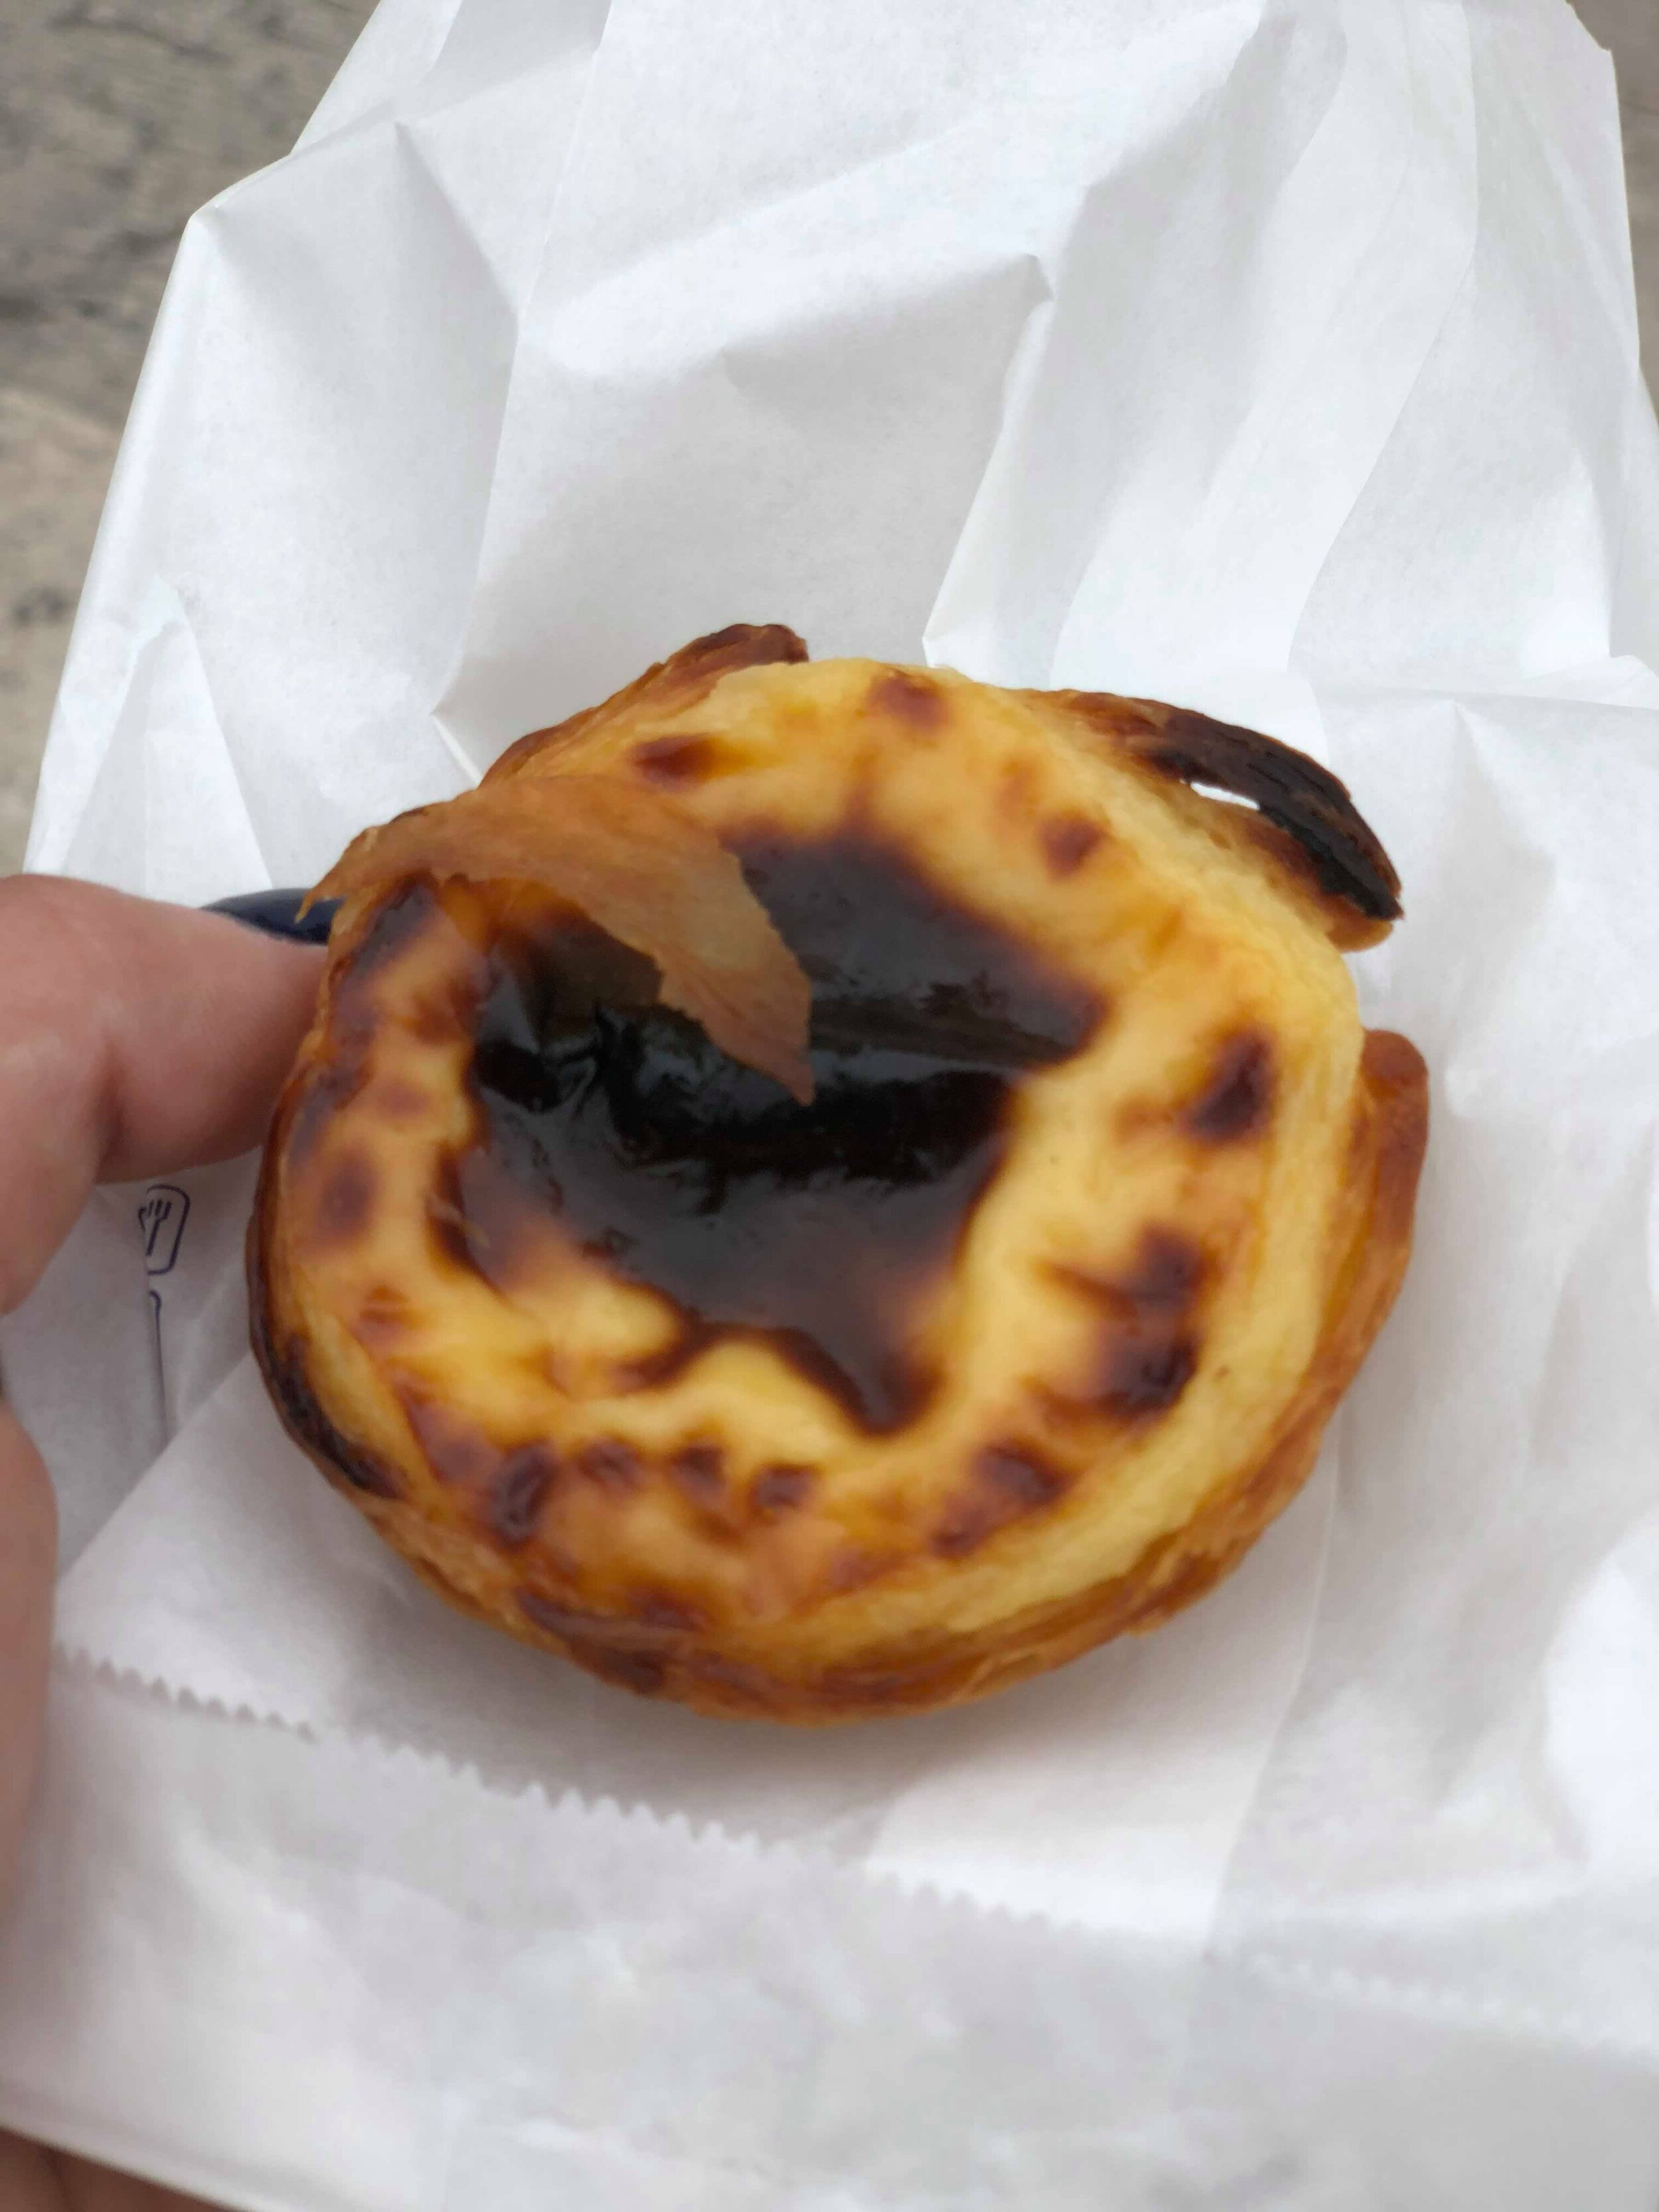 - Sweet, rich, and luxuriously indulgent, the custard center of the Pastéis de Belém was burnt just enough on the top for the flavor of caramelization to come through. The shell is flakier and slightly crunchier than the Pastéis de nata I previously sampled. All elements of the pastry combine to form a nearly perfect sweet treat, and it's not hard to see why Portuguese egg tarts have gained popularity around the world. My favorite, however, might remain those from KFC outlets in China. Don't be offended!